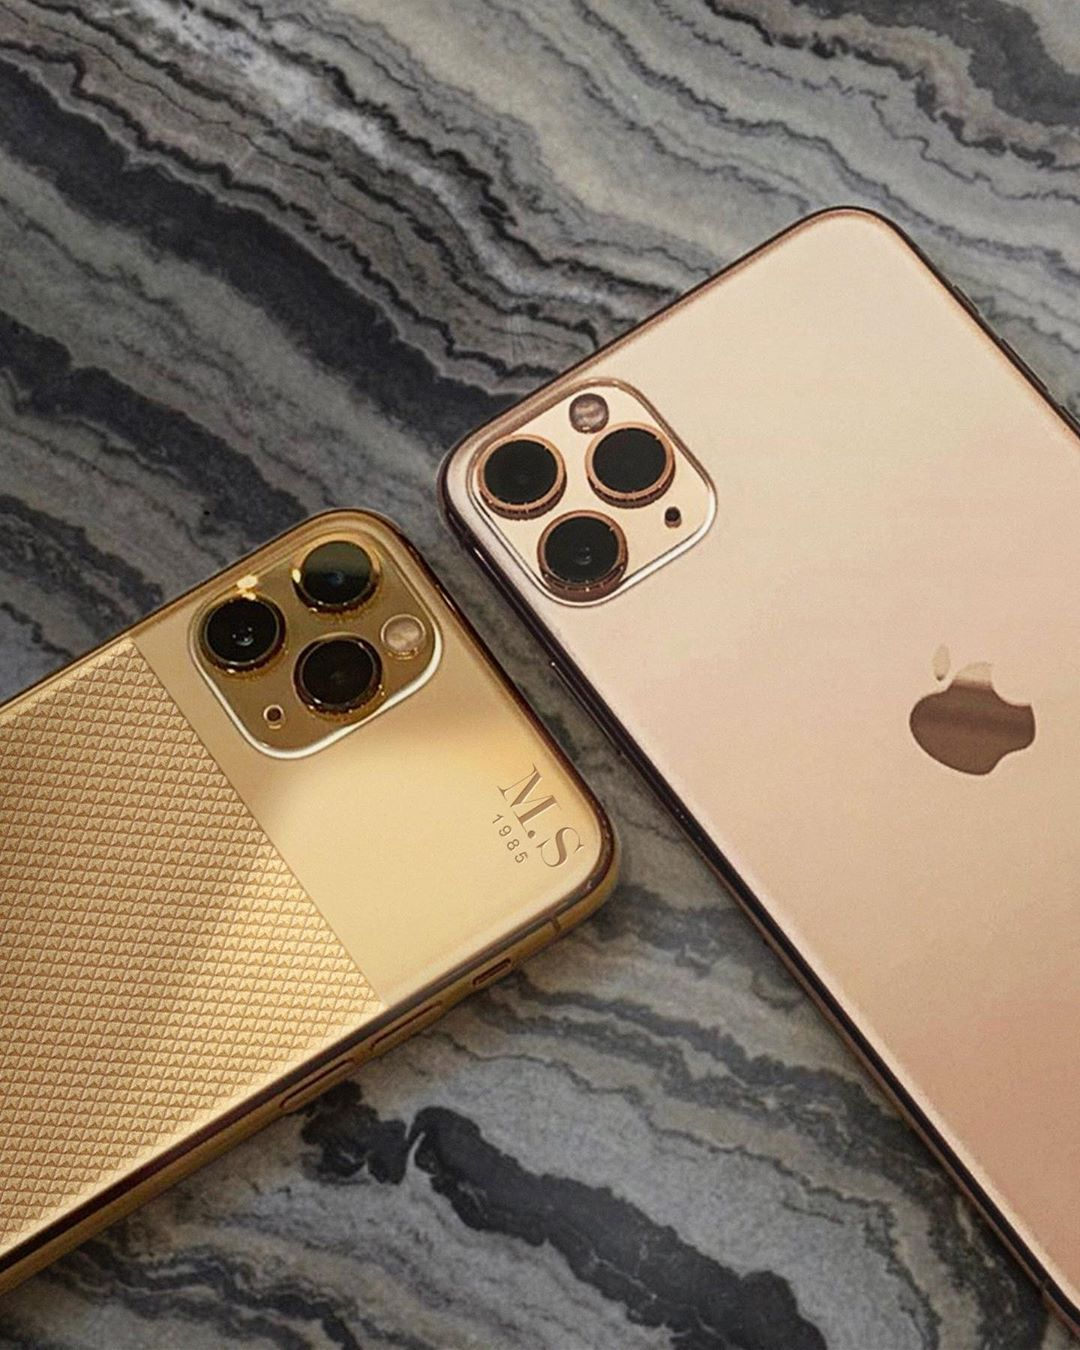 "Golden Concept on Instagram: ""#iPhone11Pro [BLK] Edition in 24k Gold customized with initials vs #iPhone11ProMax none-customized"" 4K"